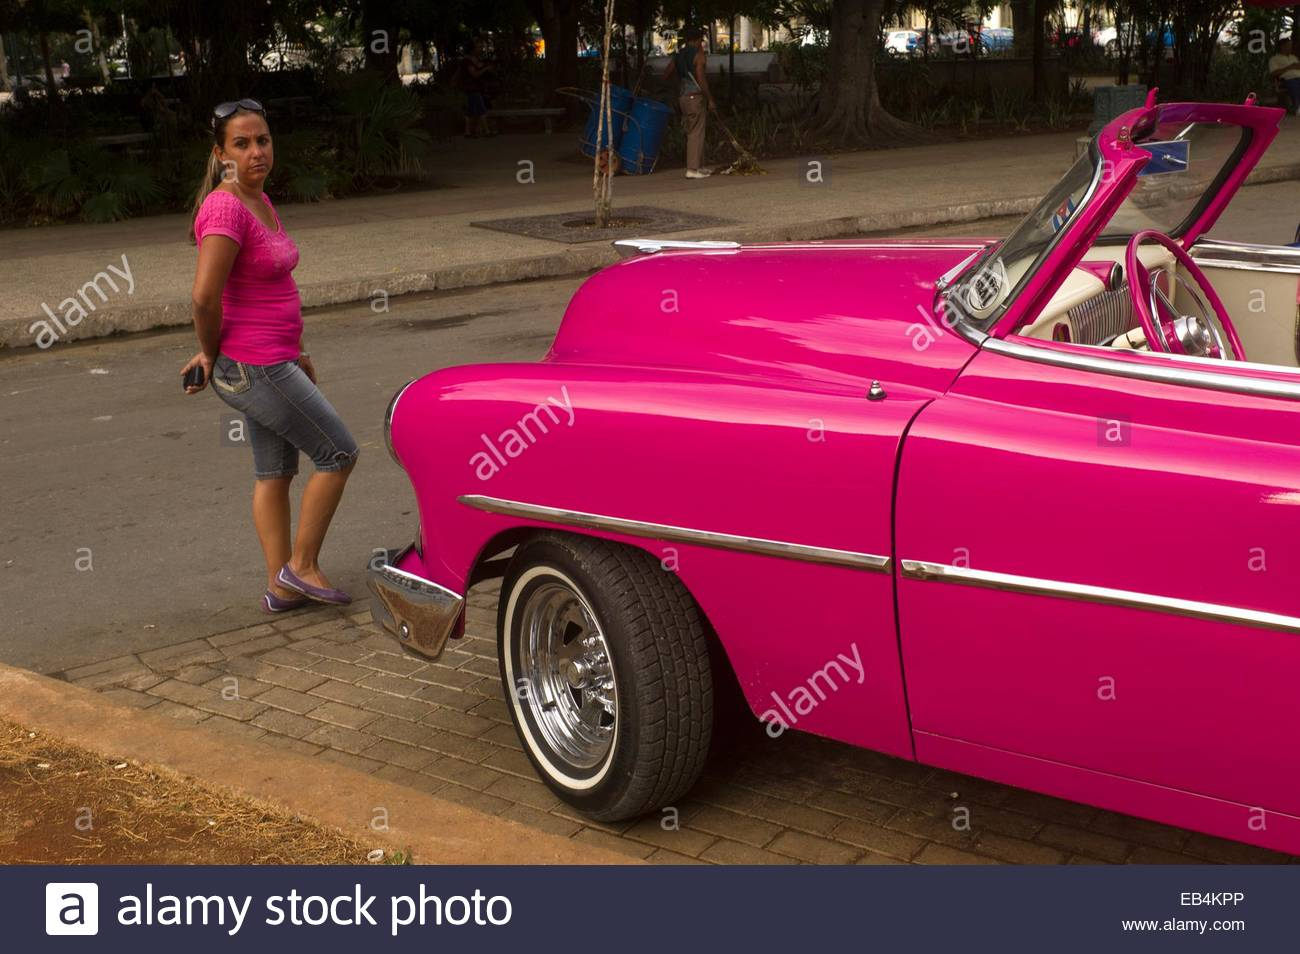 A woman in a pink T shirt walks past a hot pink vintage American car. Stock Photo